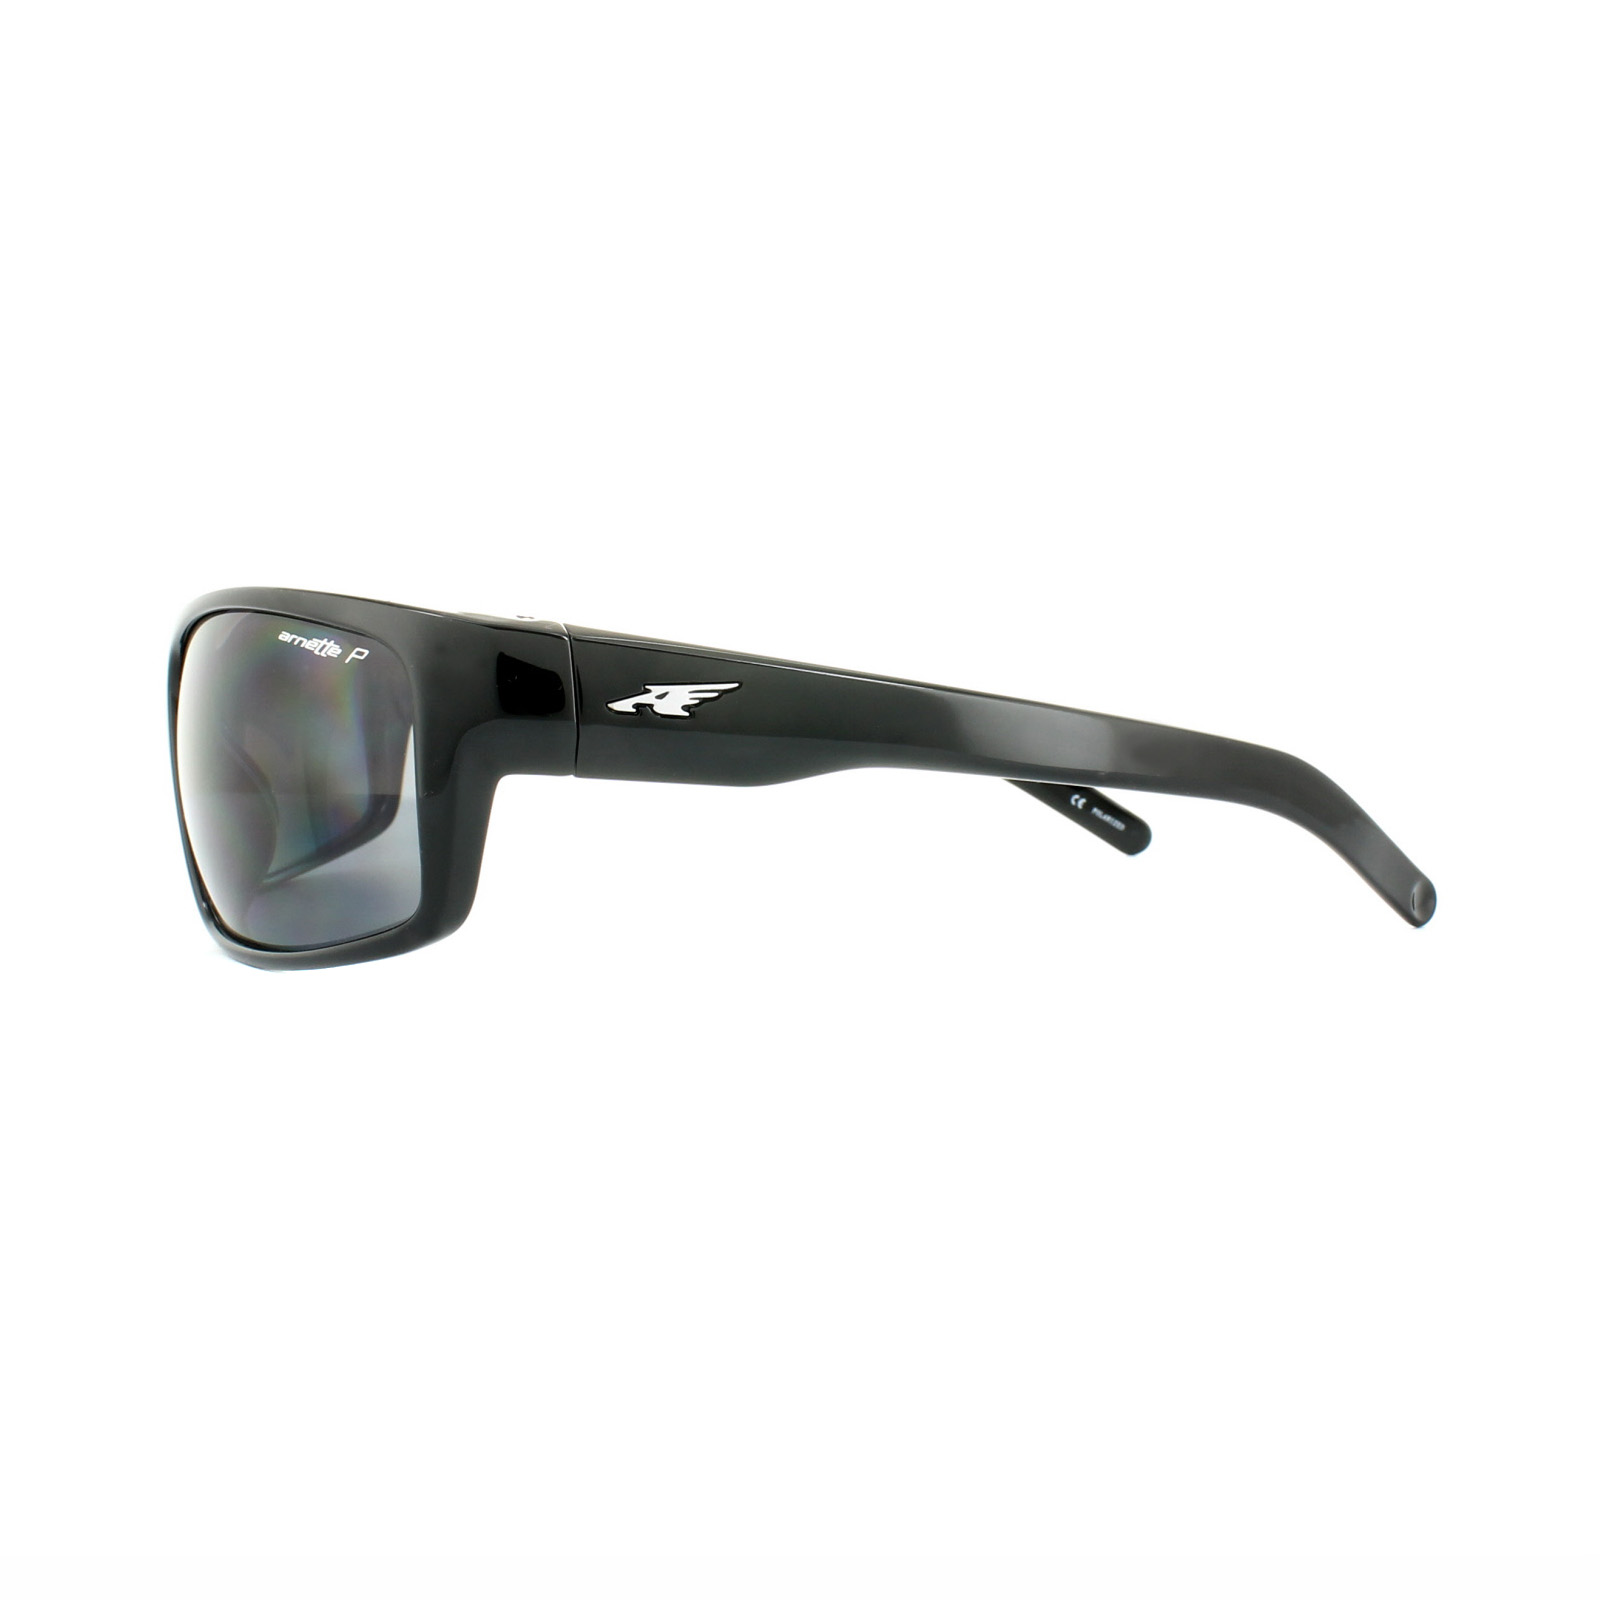 5da3034caf Arnette Sunglasses Fastball 4202 226781 Black on Graphics Grey ...